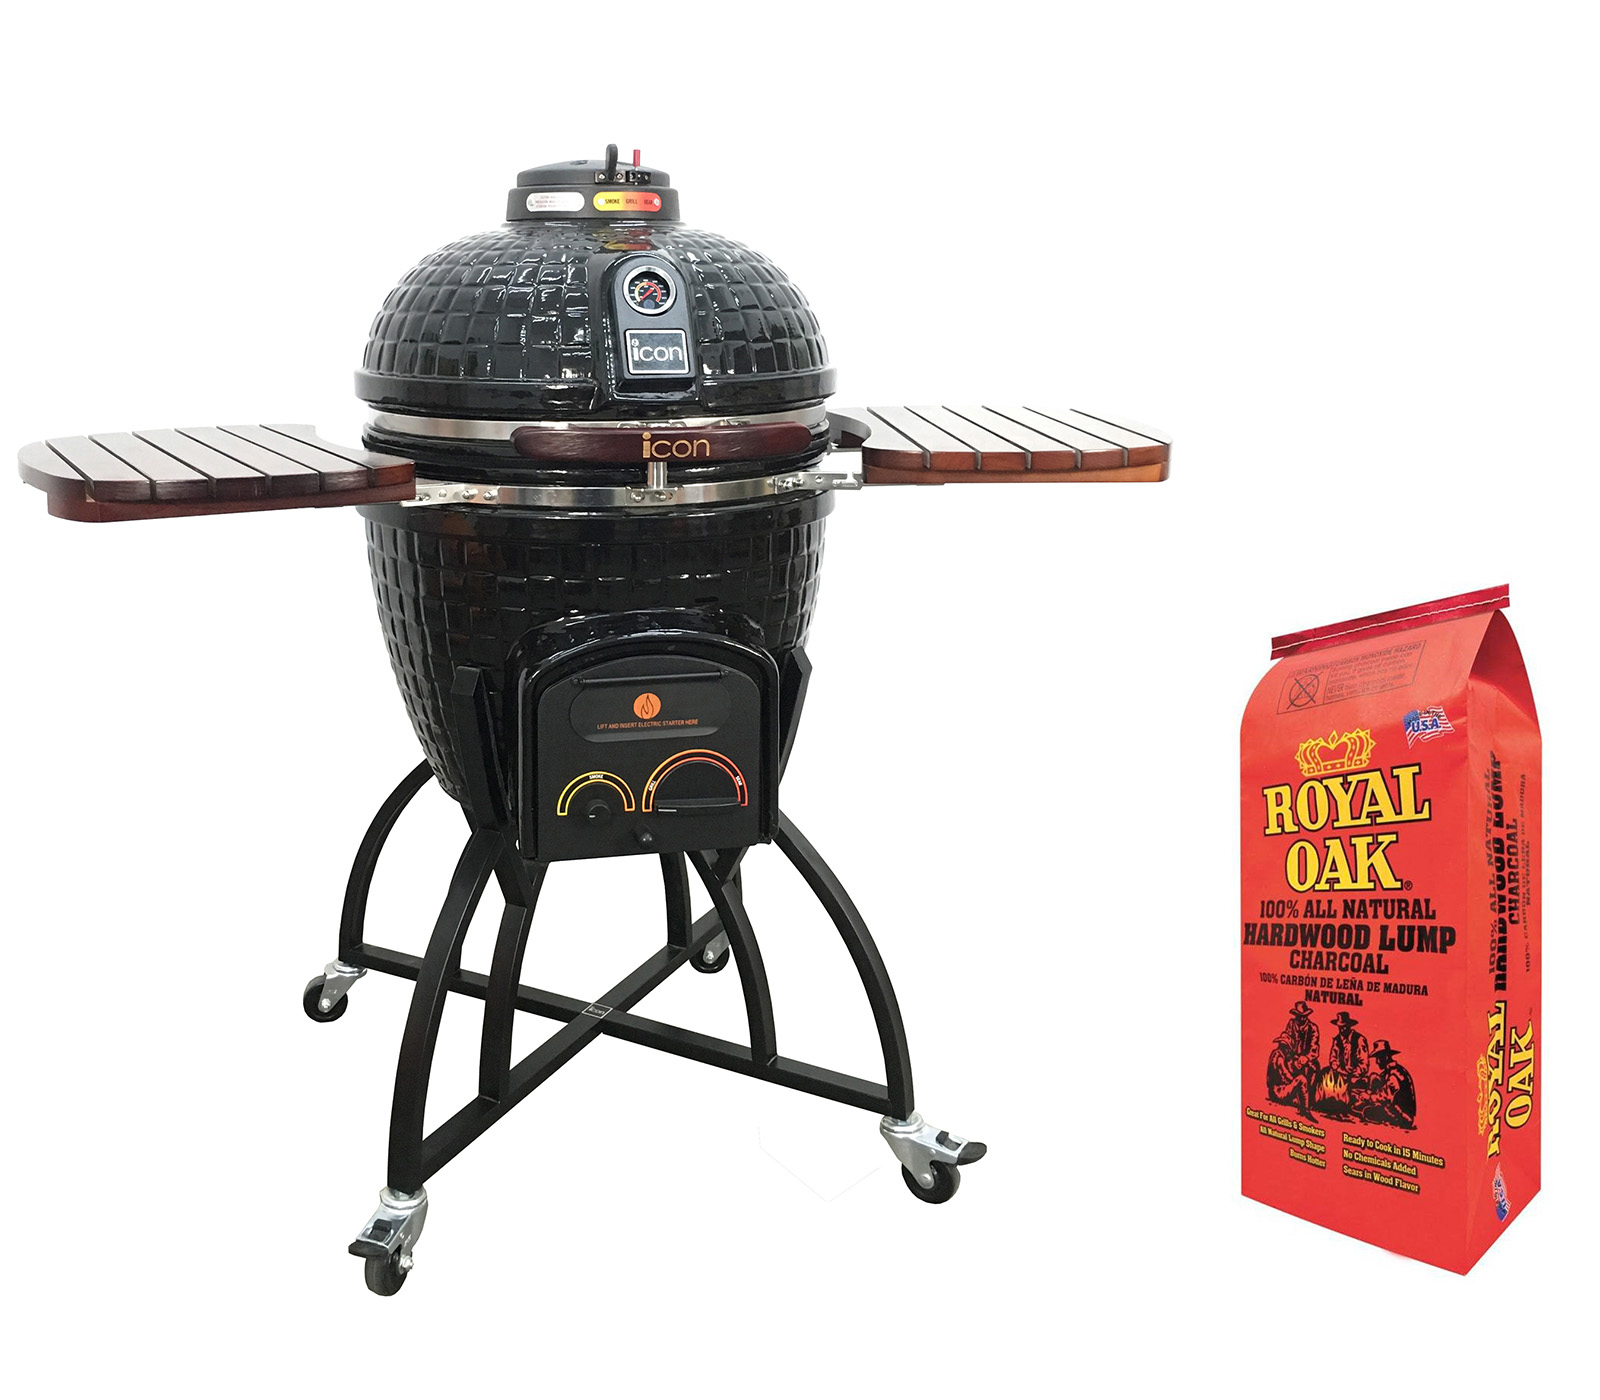 Icon Grills 400 Series Black Charcoal Grill with Shelves & Lump Charcoal Bag by Icon Grills